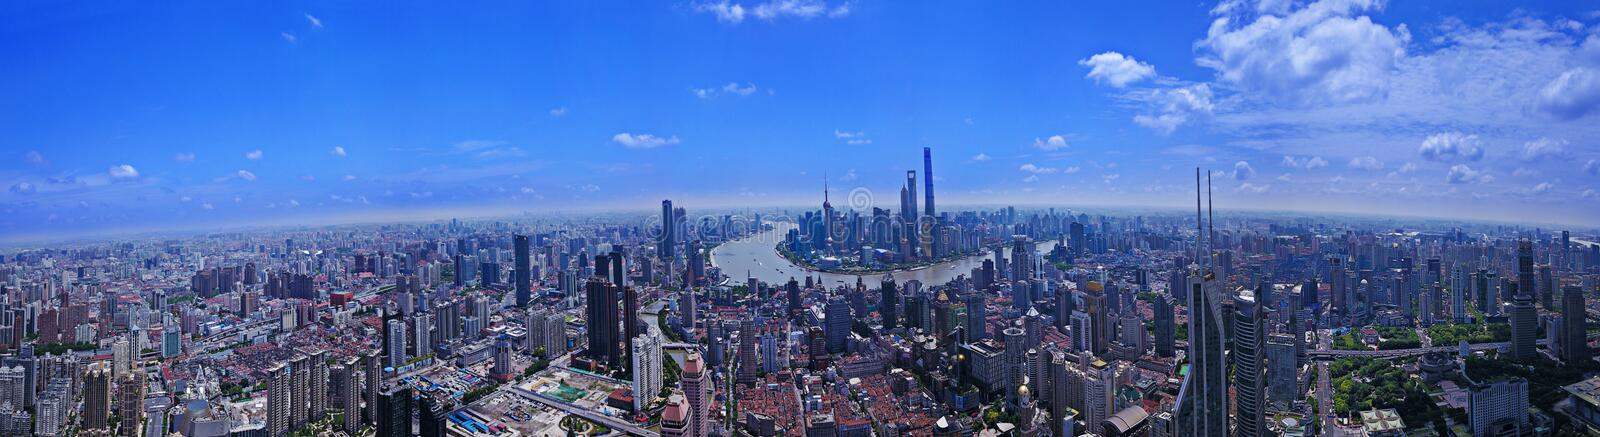 Vue de ville de panorama de CHANGHAÏ, CHINE photo stock